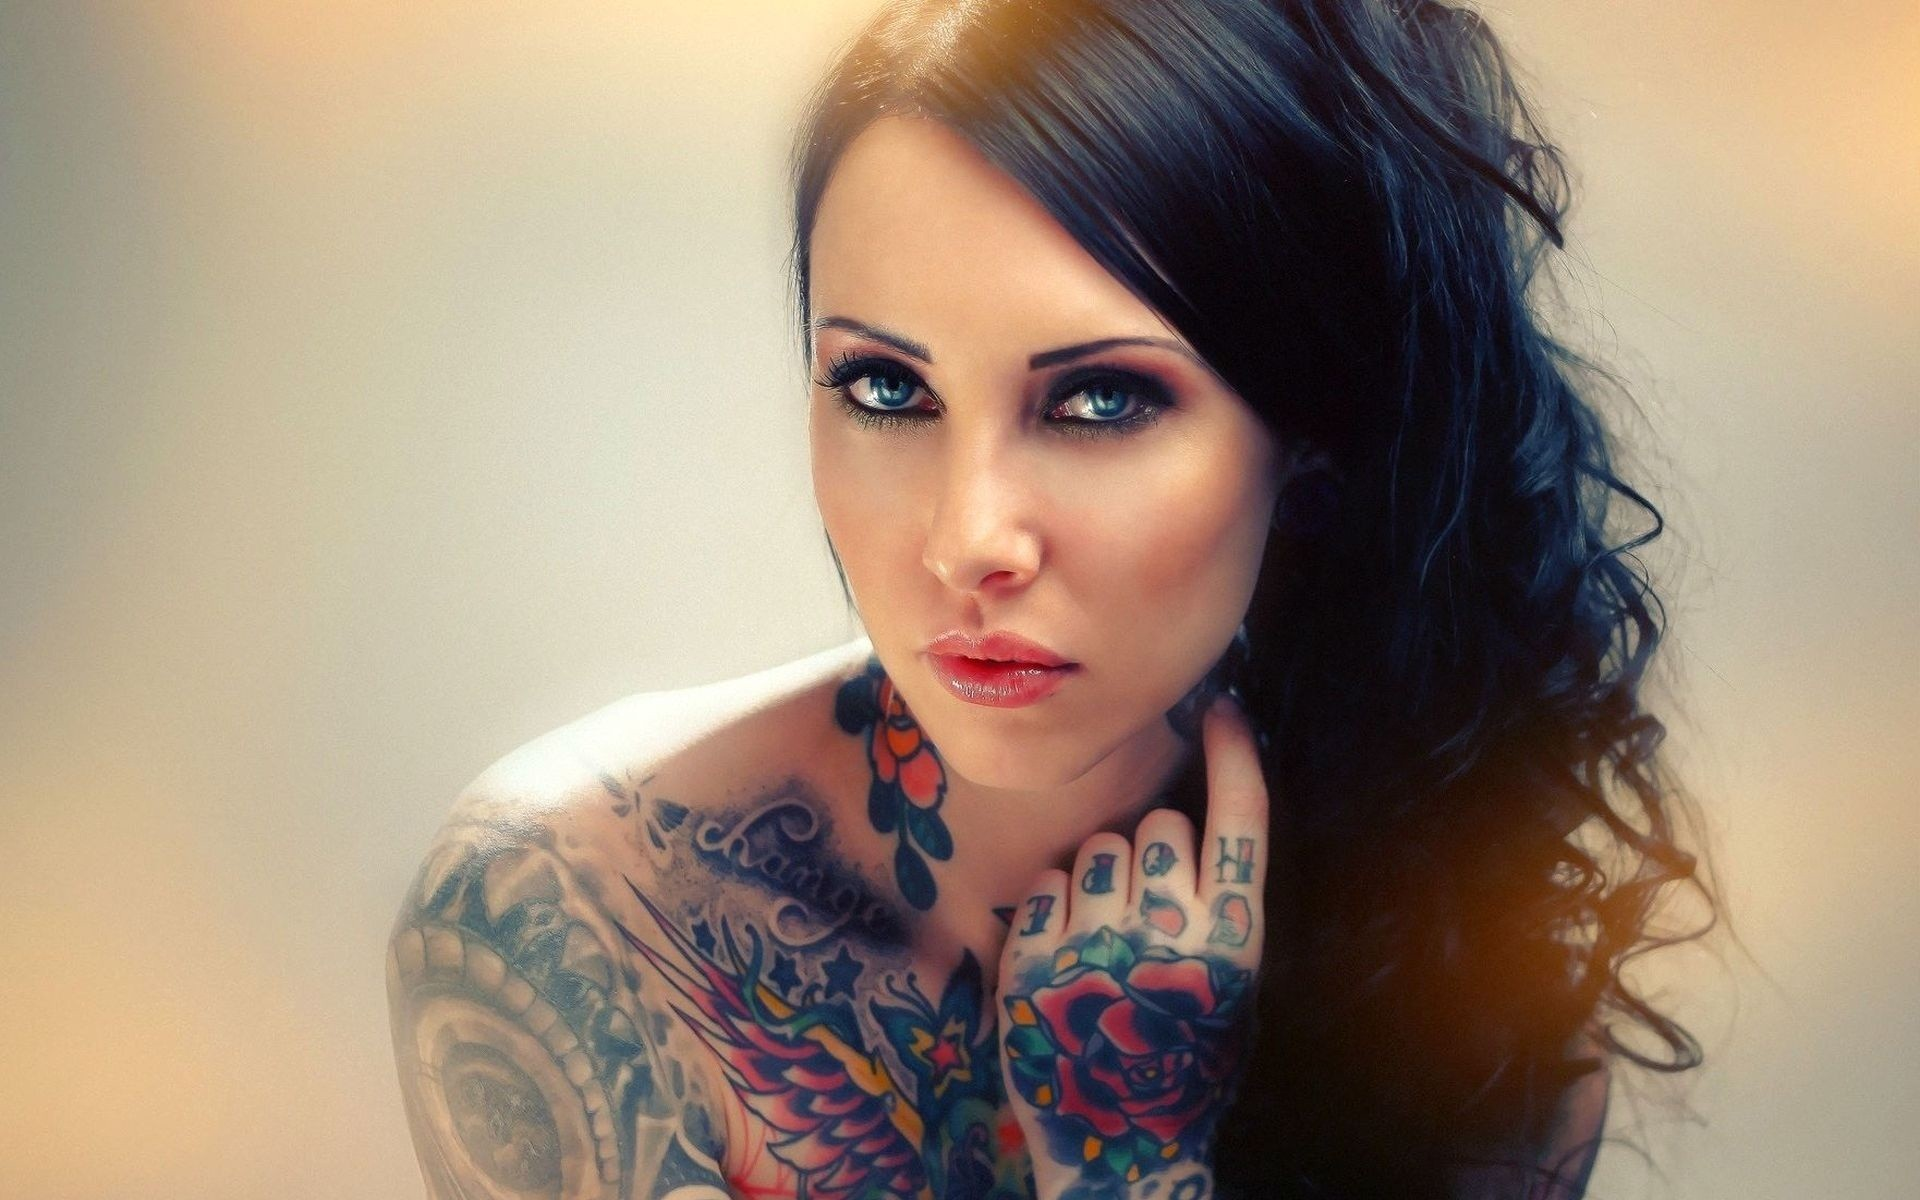 Tattoo Woman Girl Hd Awesome HD Wallpaper